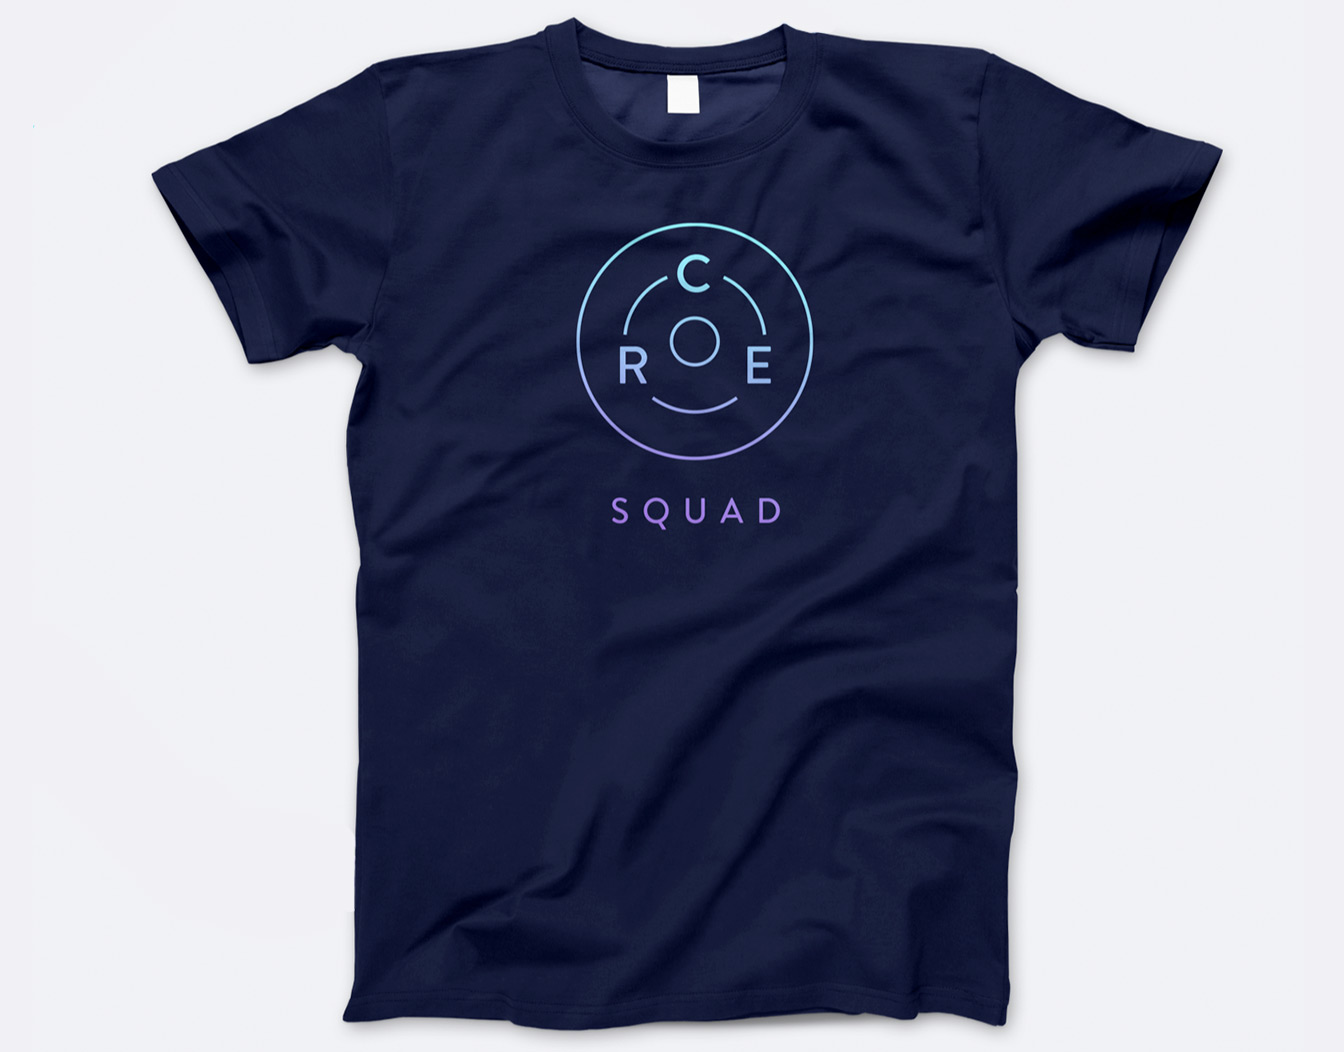 Blue t-shirt with logo